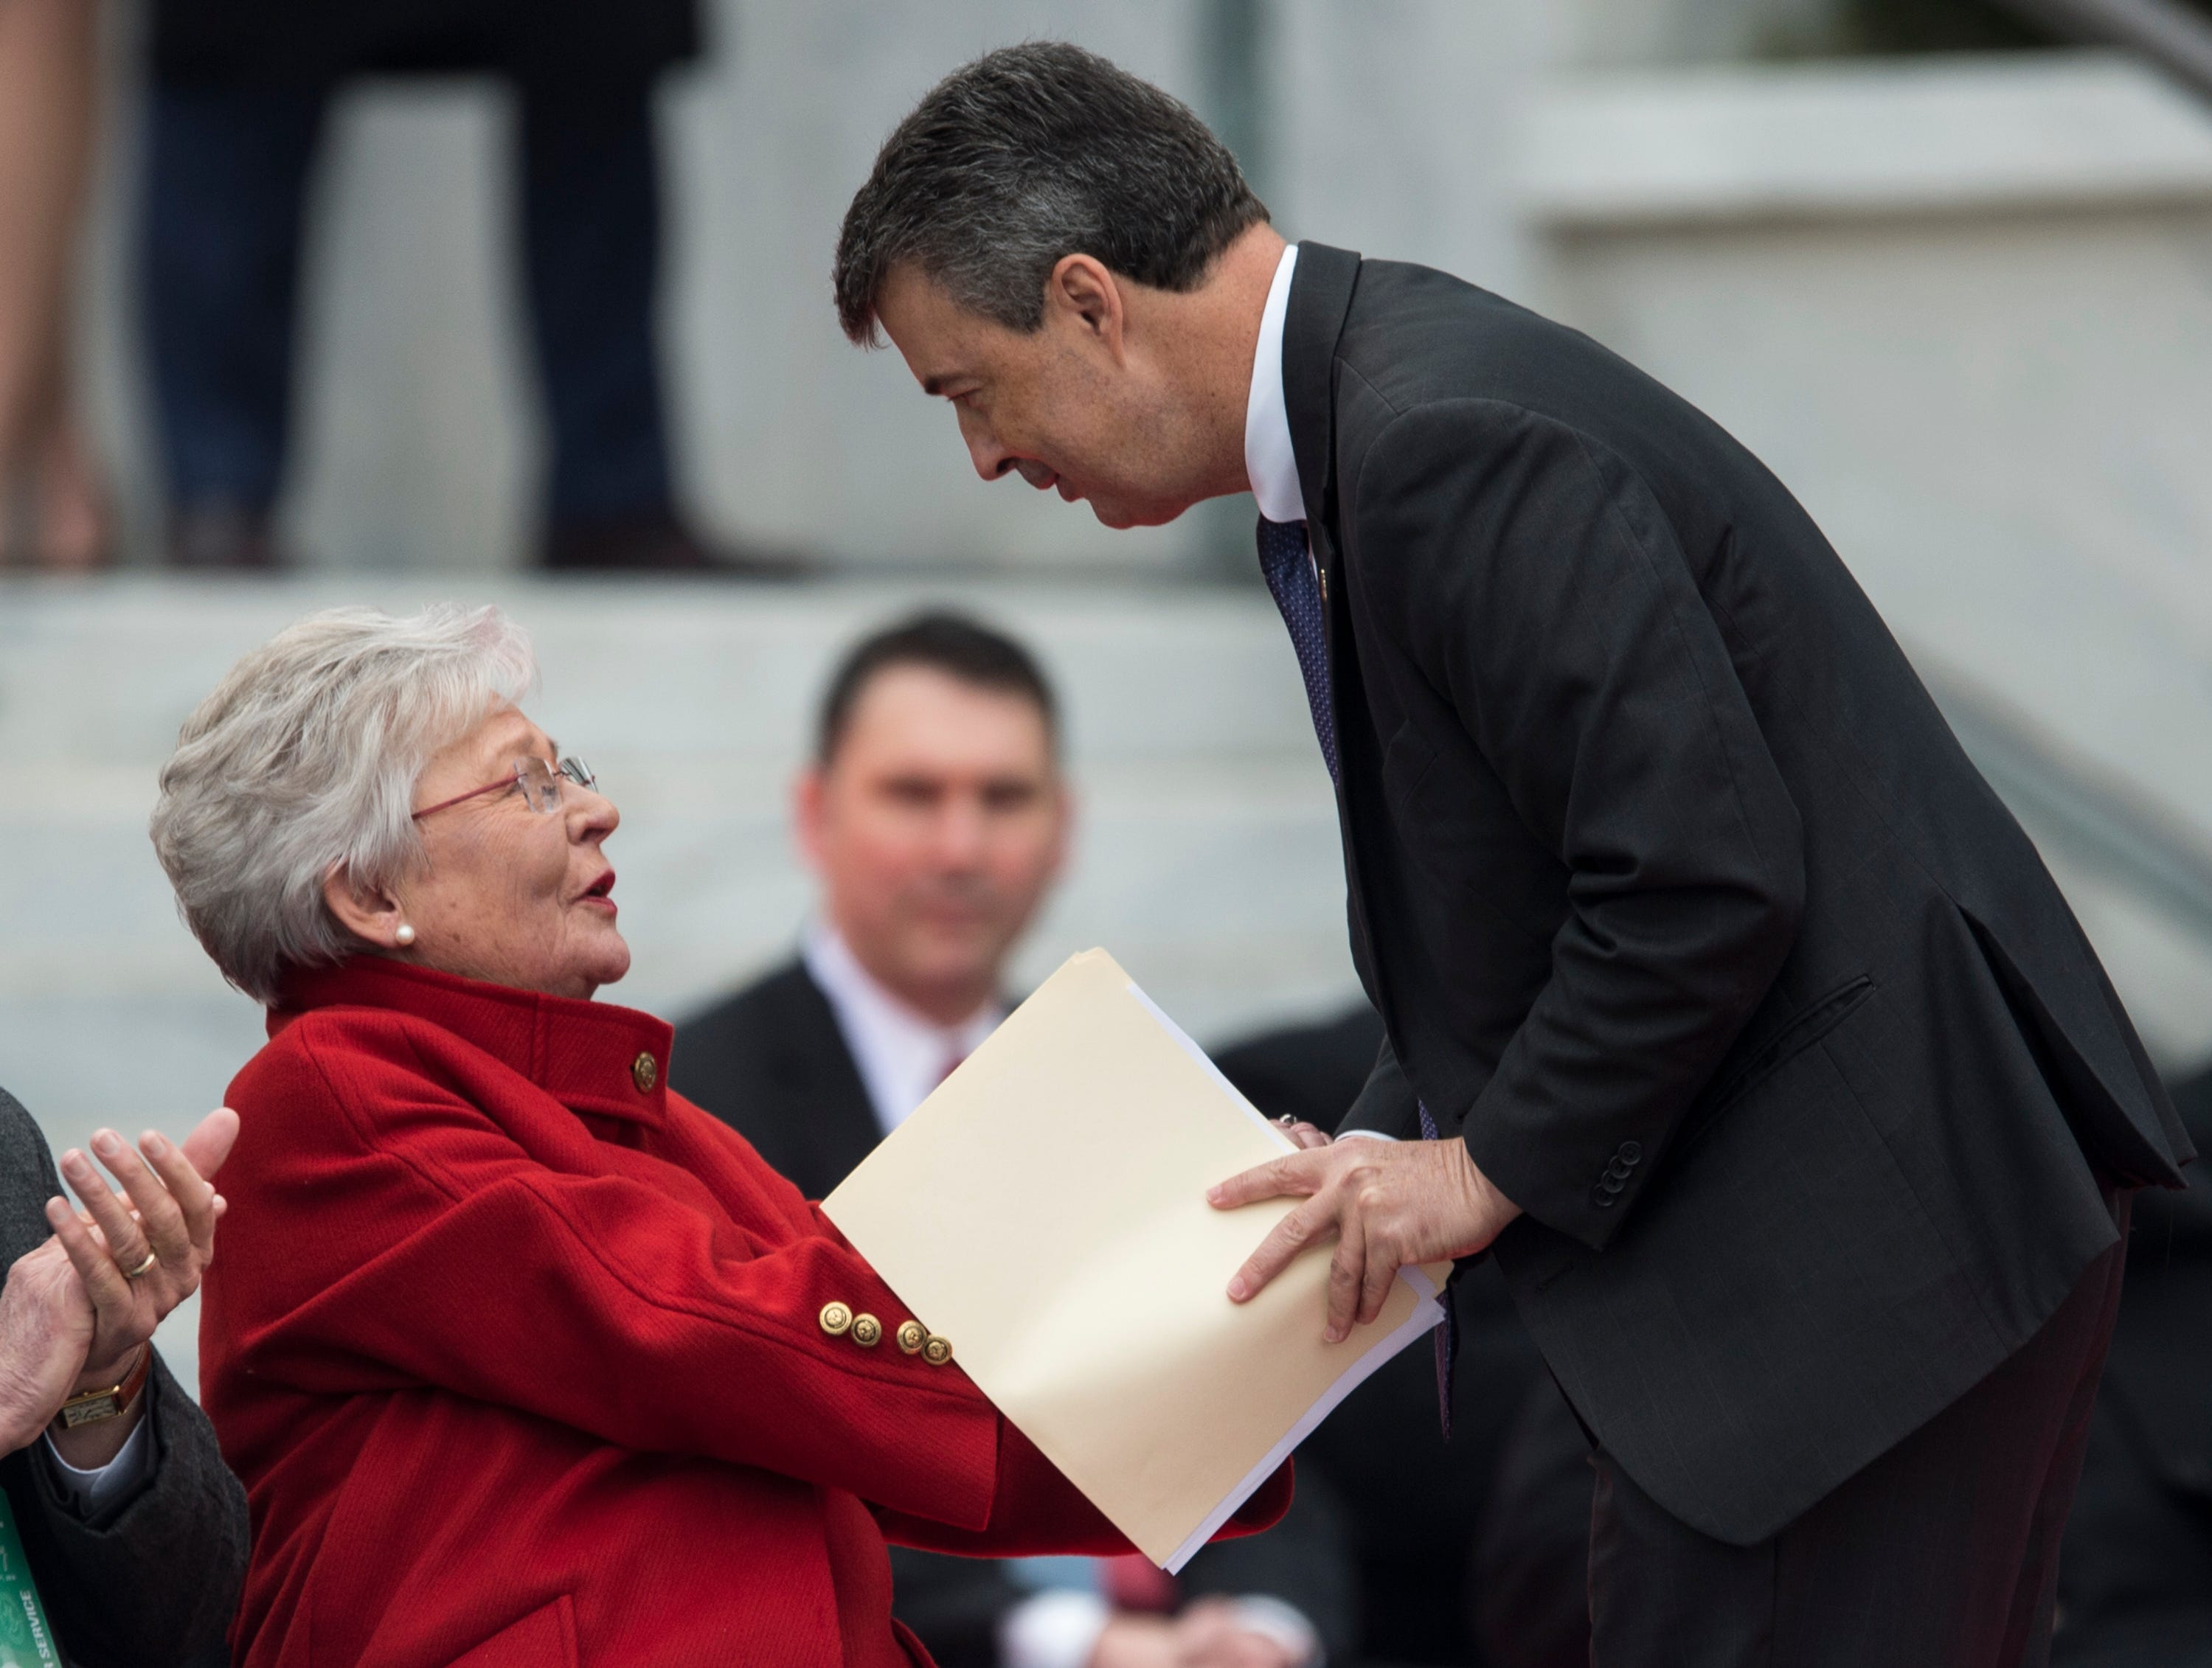 Alabama Gov. Kay Ivey congratulates Alabama Attorney General Steve Marshall after he is sworn in during Inauguration  Day on the steps of the Alabama State Capitol in Montgomery, Ala., on Monday, Jan. 14, 2019.